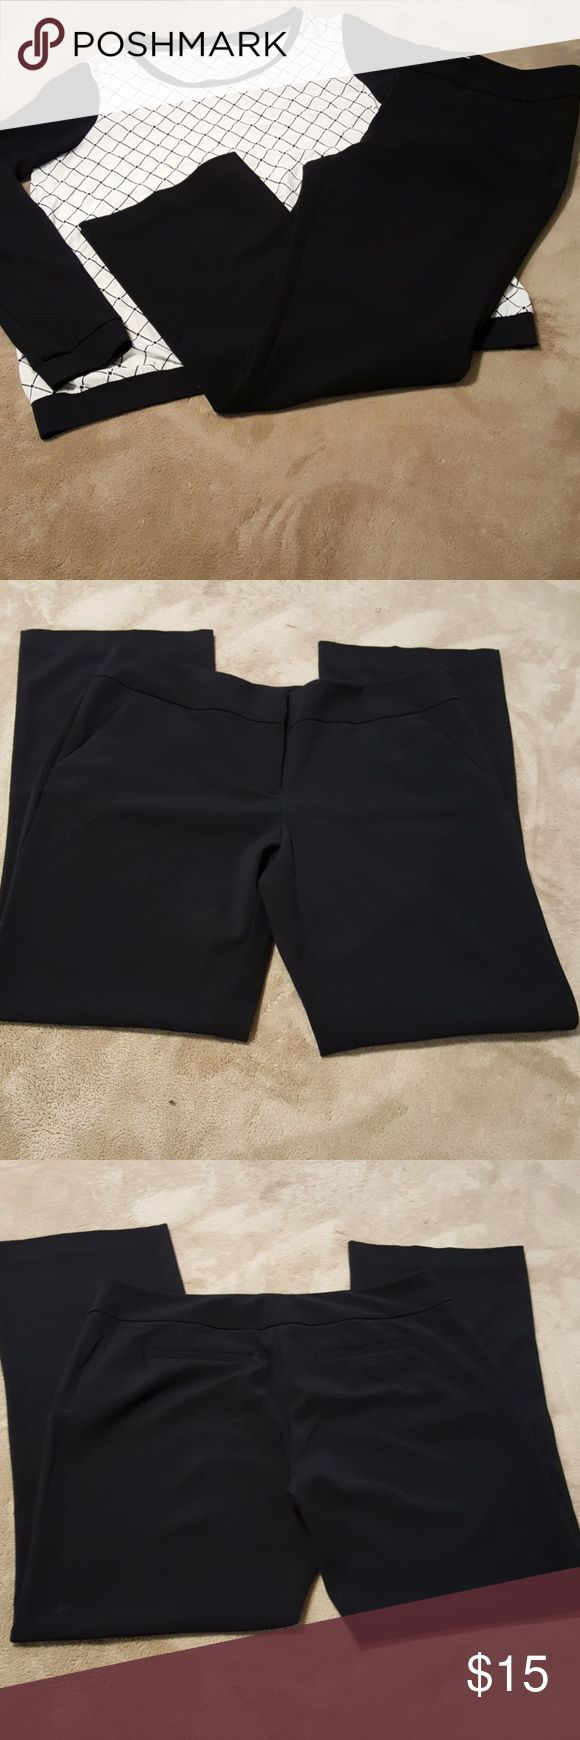 "New York & Co. Black Slacks/Pants. Sz. 10P. Very nice black dress pants/slacks/trousers by New York & Company. No holes, pilling, pulls, or stains. See pics for approx measurements. Back ""pockets"" are faux. Pockets on front side are real. Very nice pants in very good used condition. Size 10 Petite. New York & Company Pants"